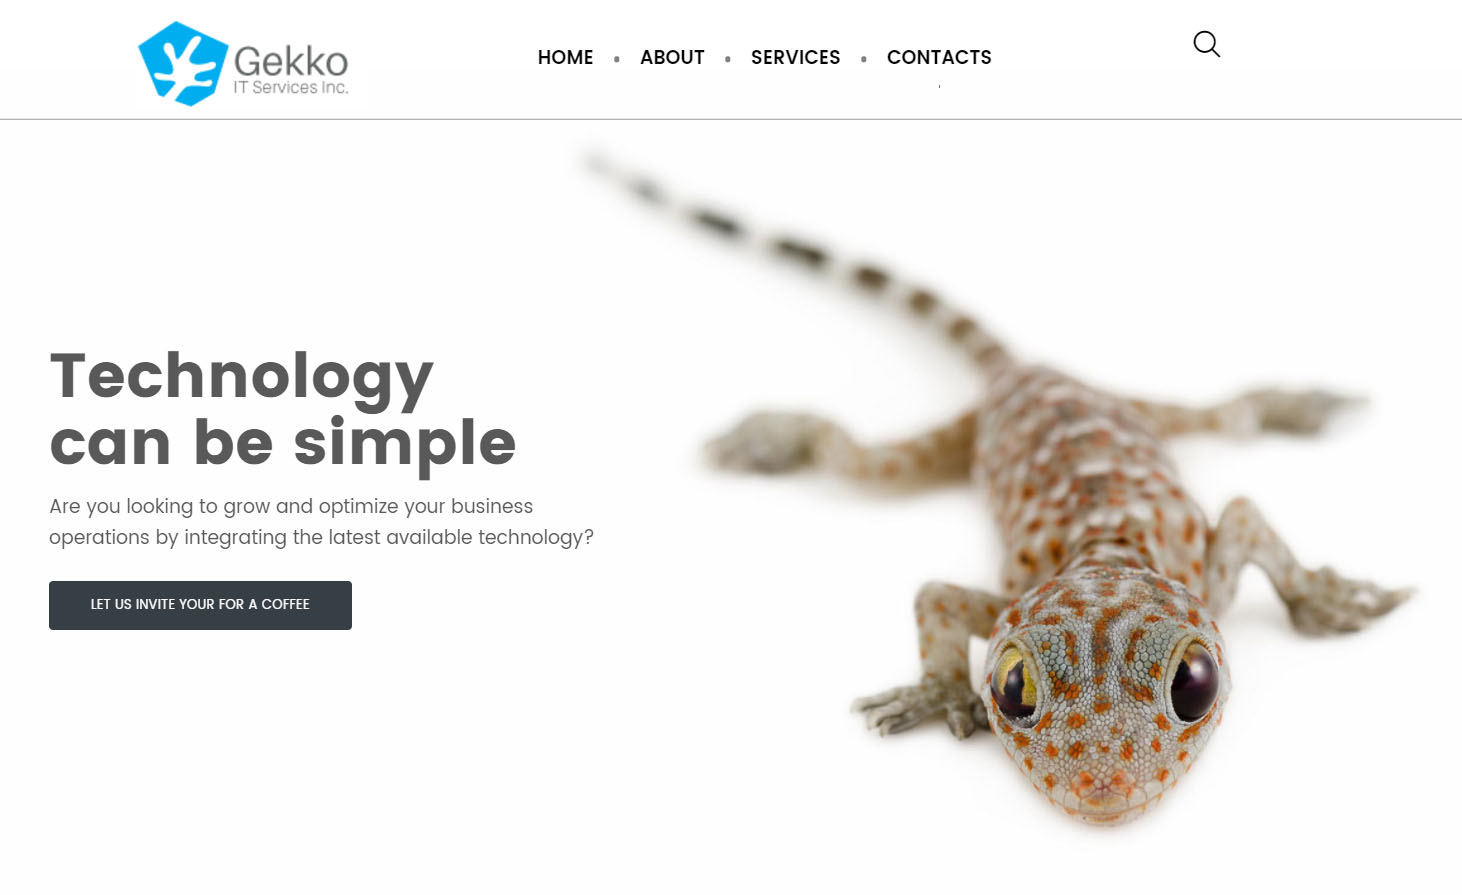 Gekko IT Services